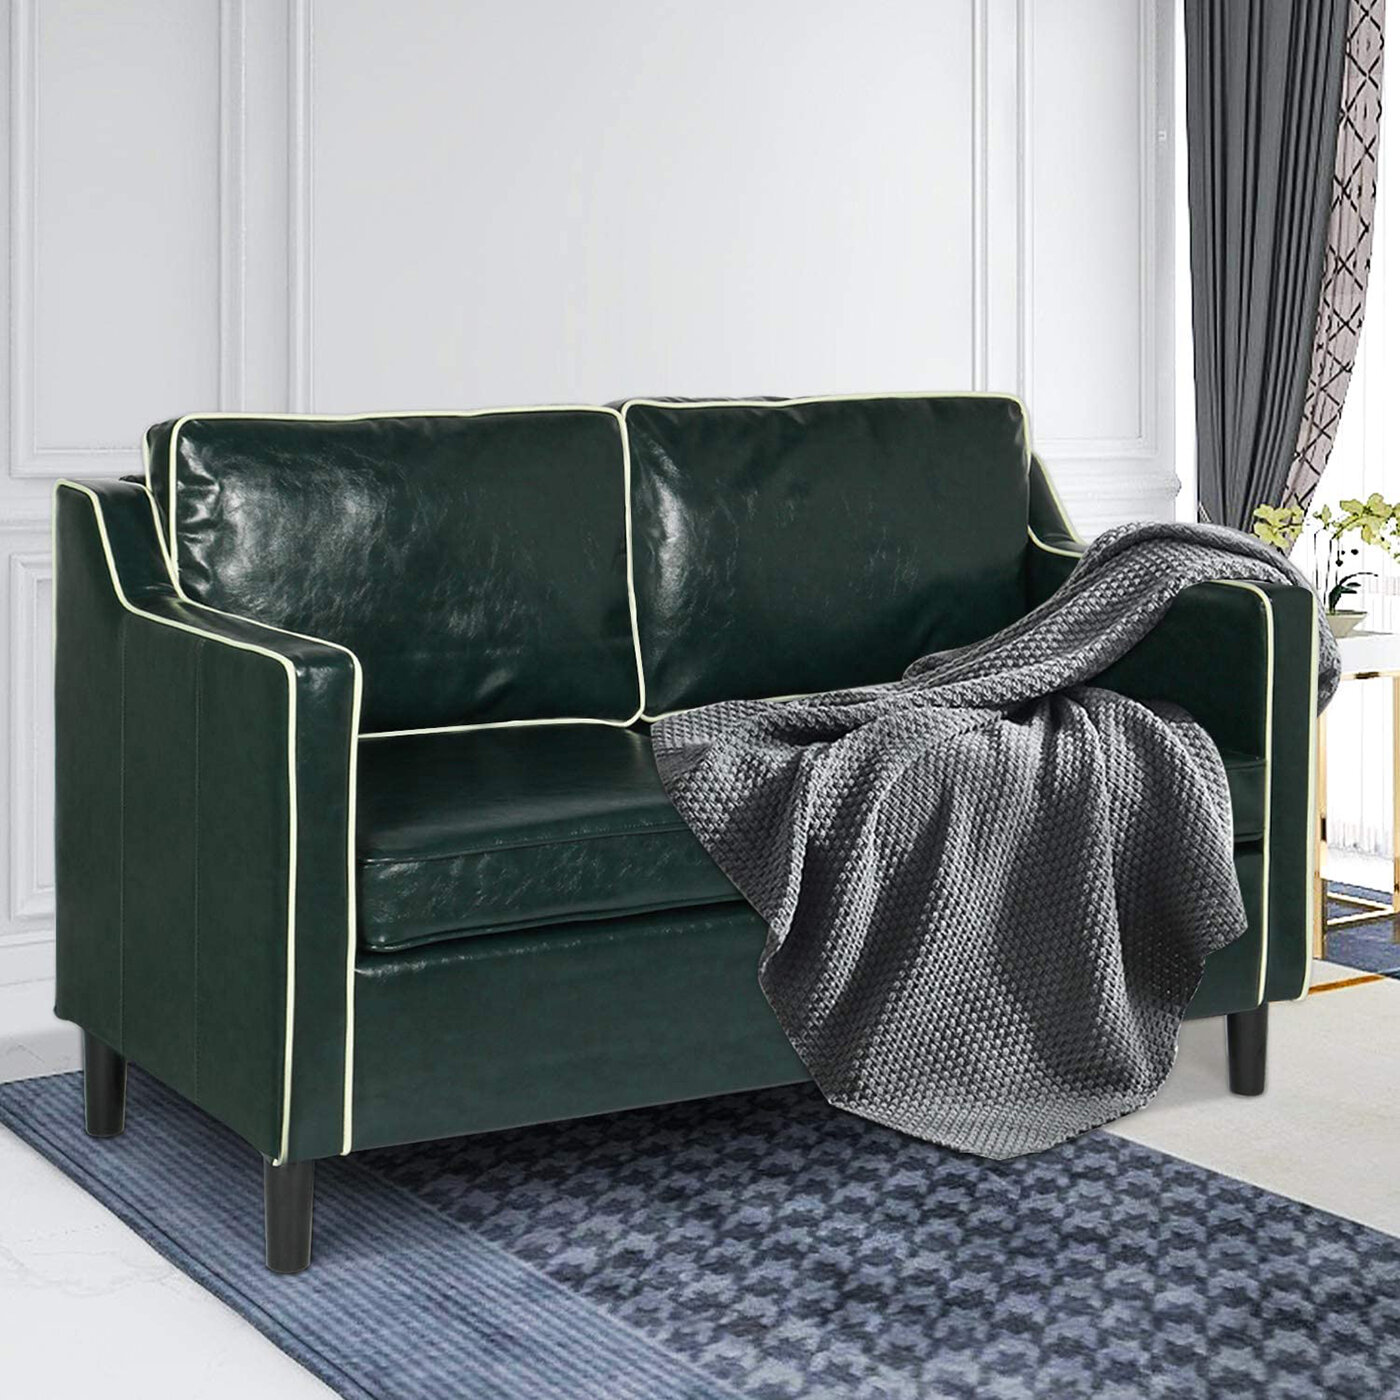 Longshore Tides Faux Leather Modern Loveseat Sofa Suitable For Small Space Configuration Luxurious Double Seat Sofa Bedroom Office Couch Green Wayfair Ca